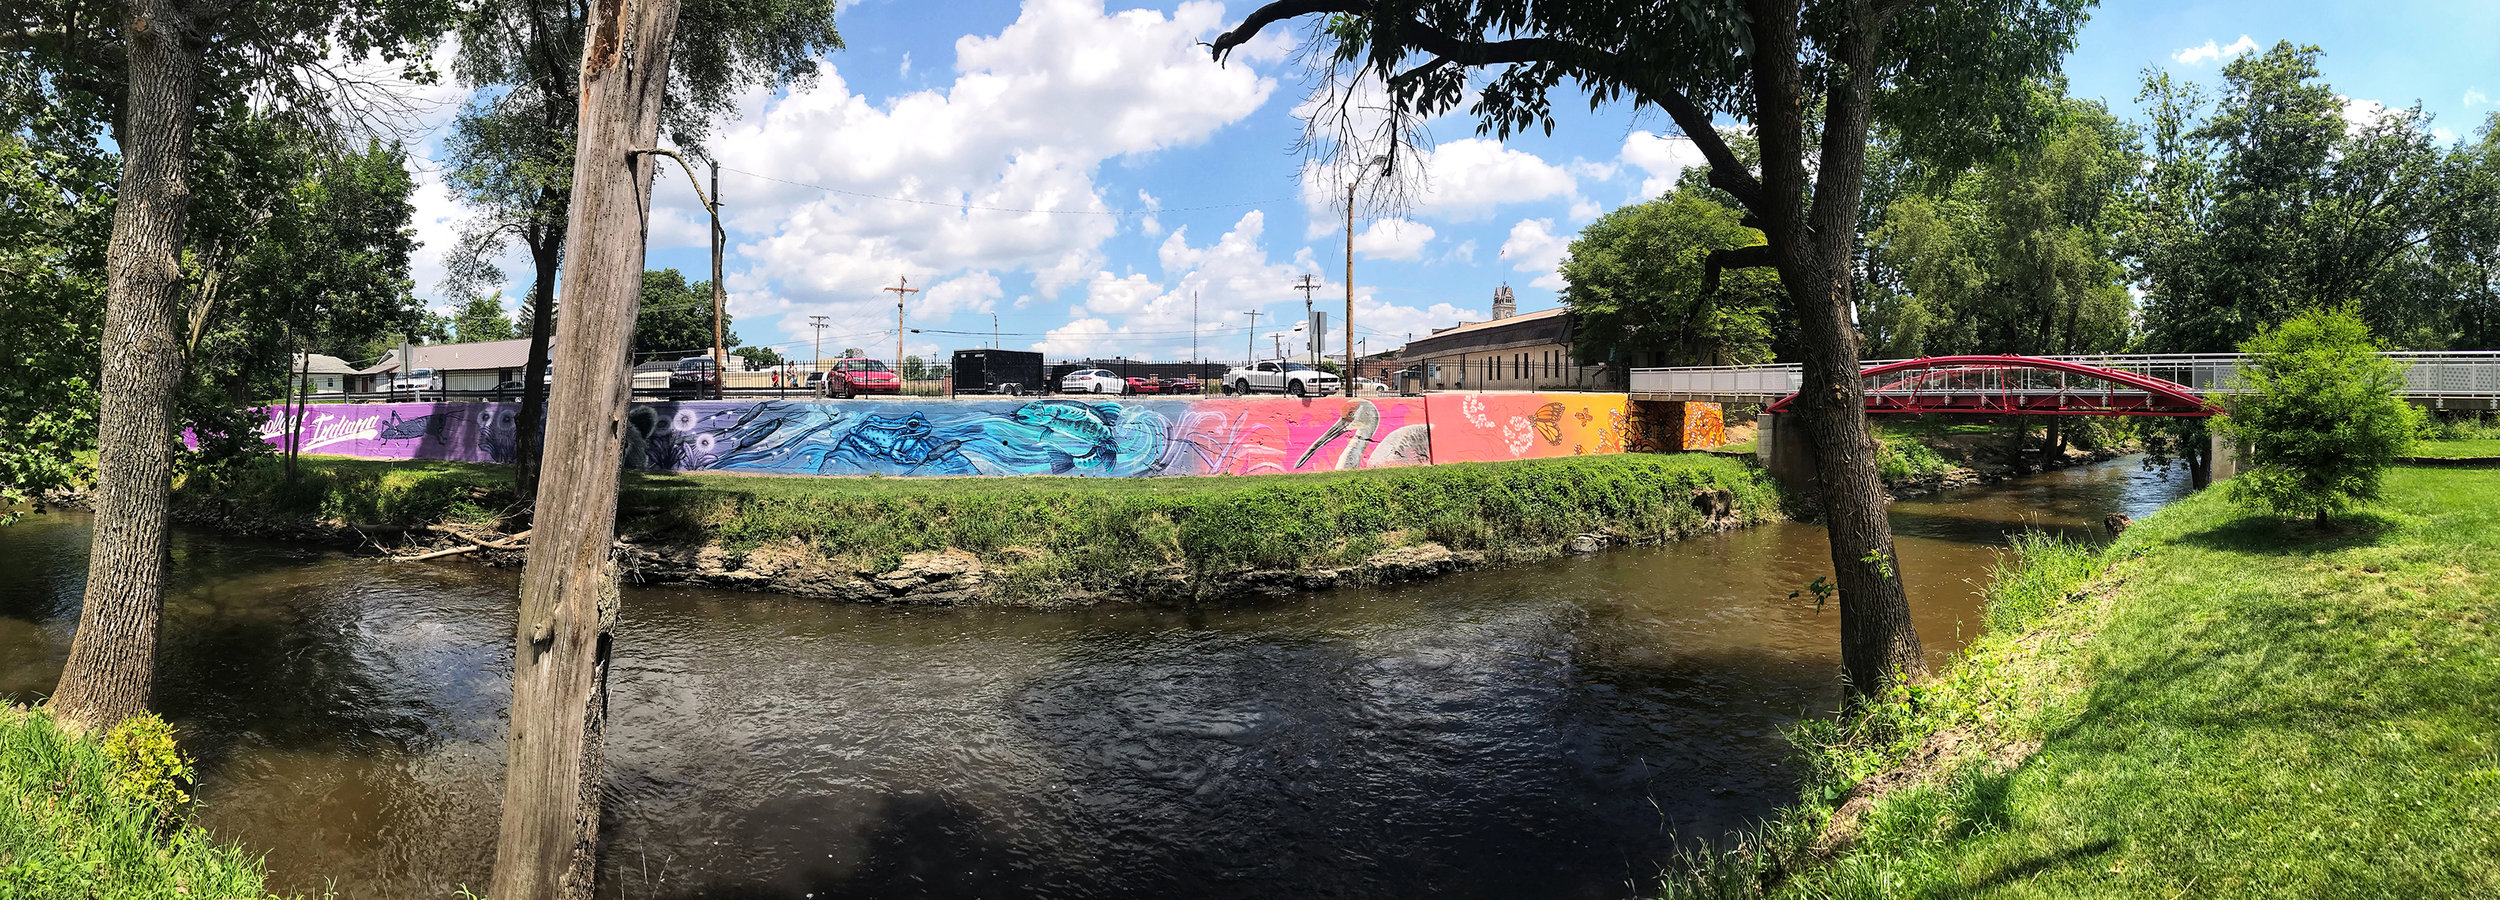 MURAL 1 - Potawatomi Park Collaboration: This mural is a collaborated effort by Jenna Morello, Andre Cobre, Chris Chanyang Shim, Cameron Moberg, and Emily Ding. Best viewed in Potawatomi Park across the Iroquois River.